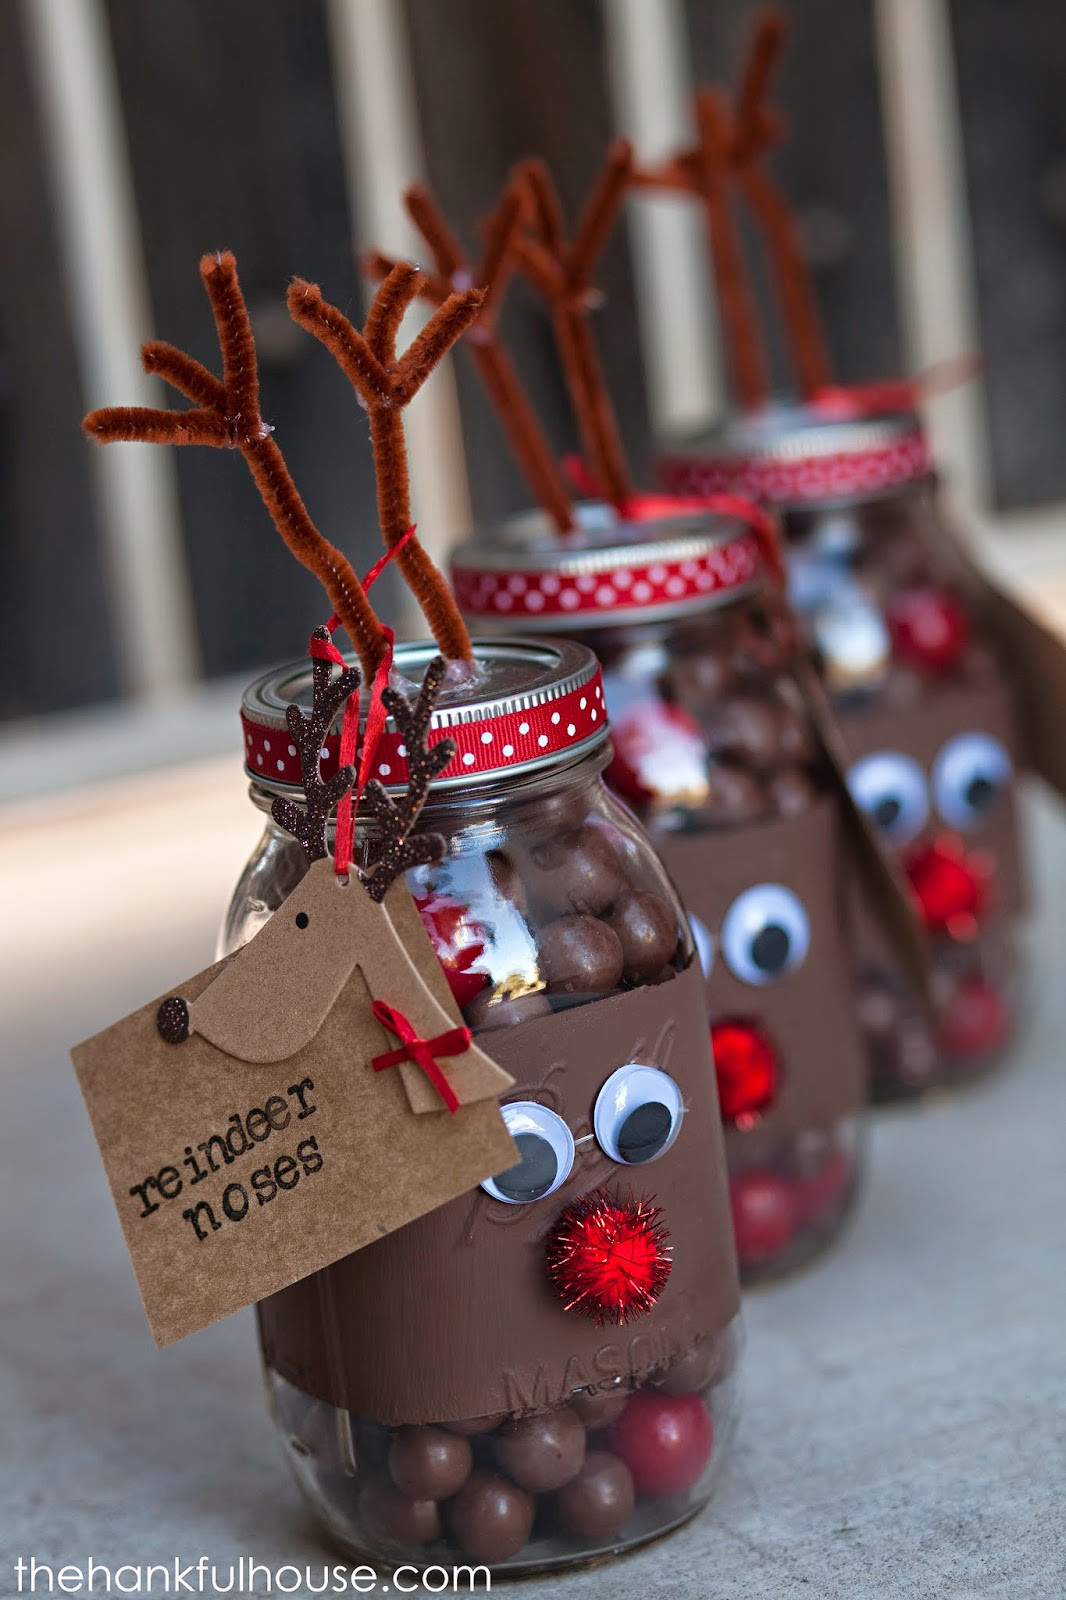 Best ideas about DIY Gift For Christmas . Save or Pin Christmas Mason Jar Gifts Now.